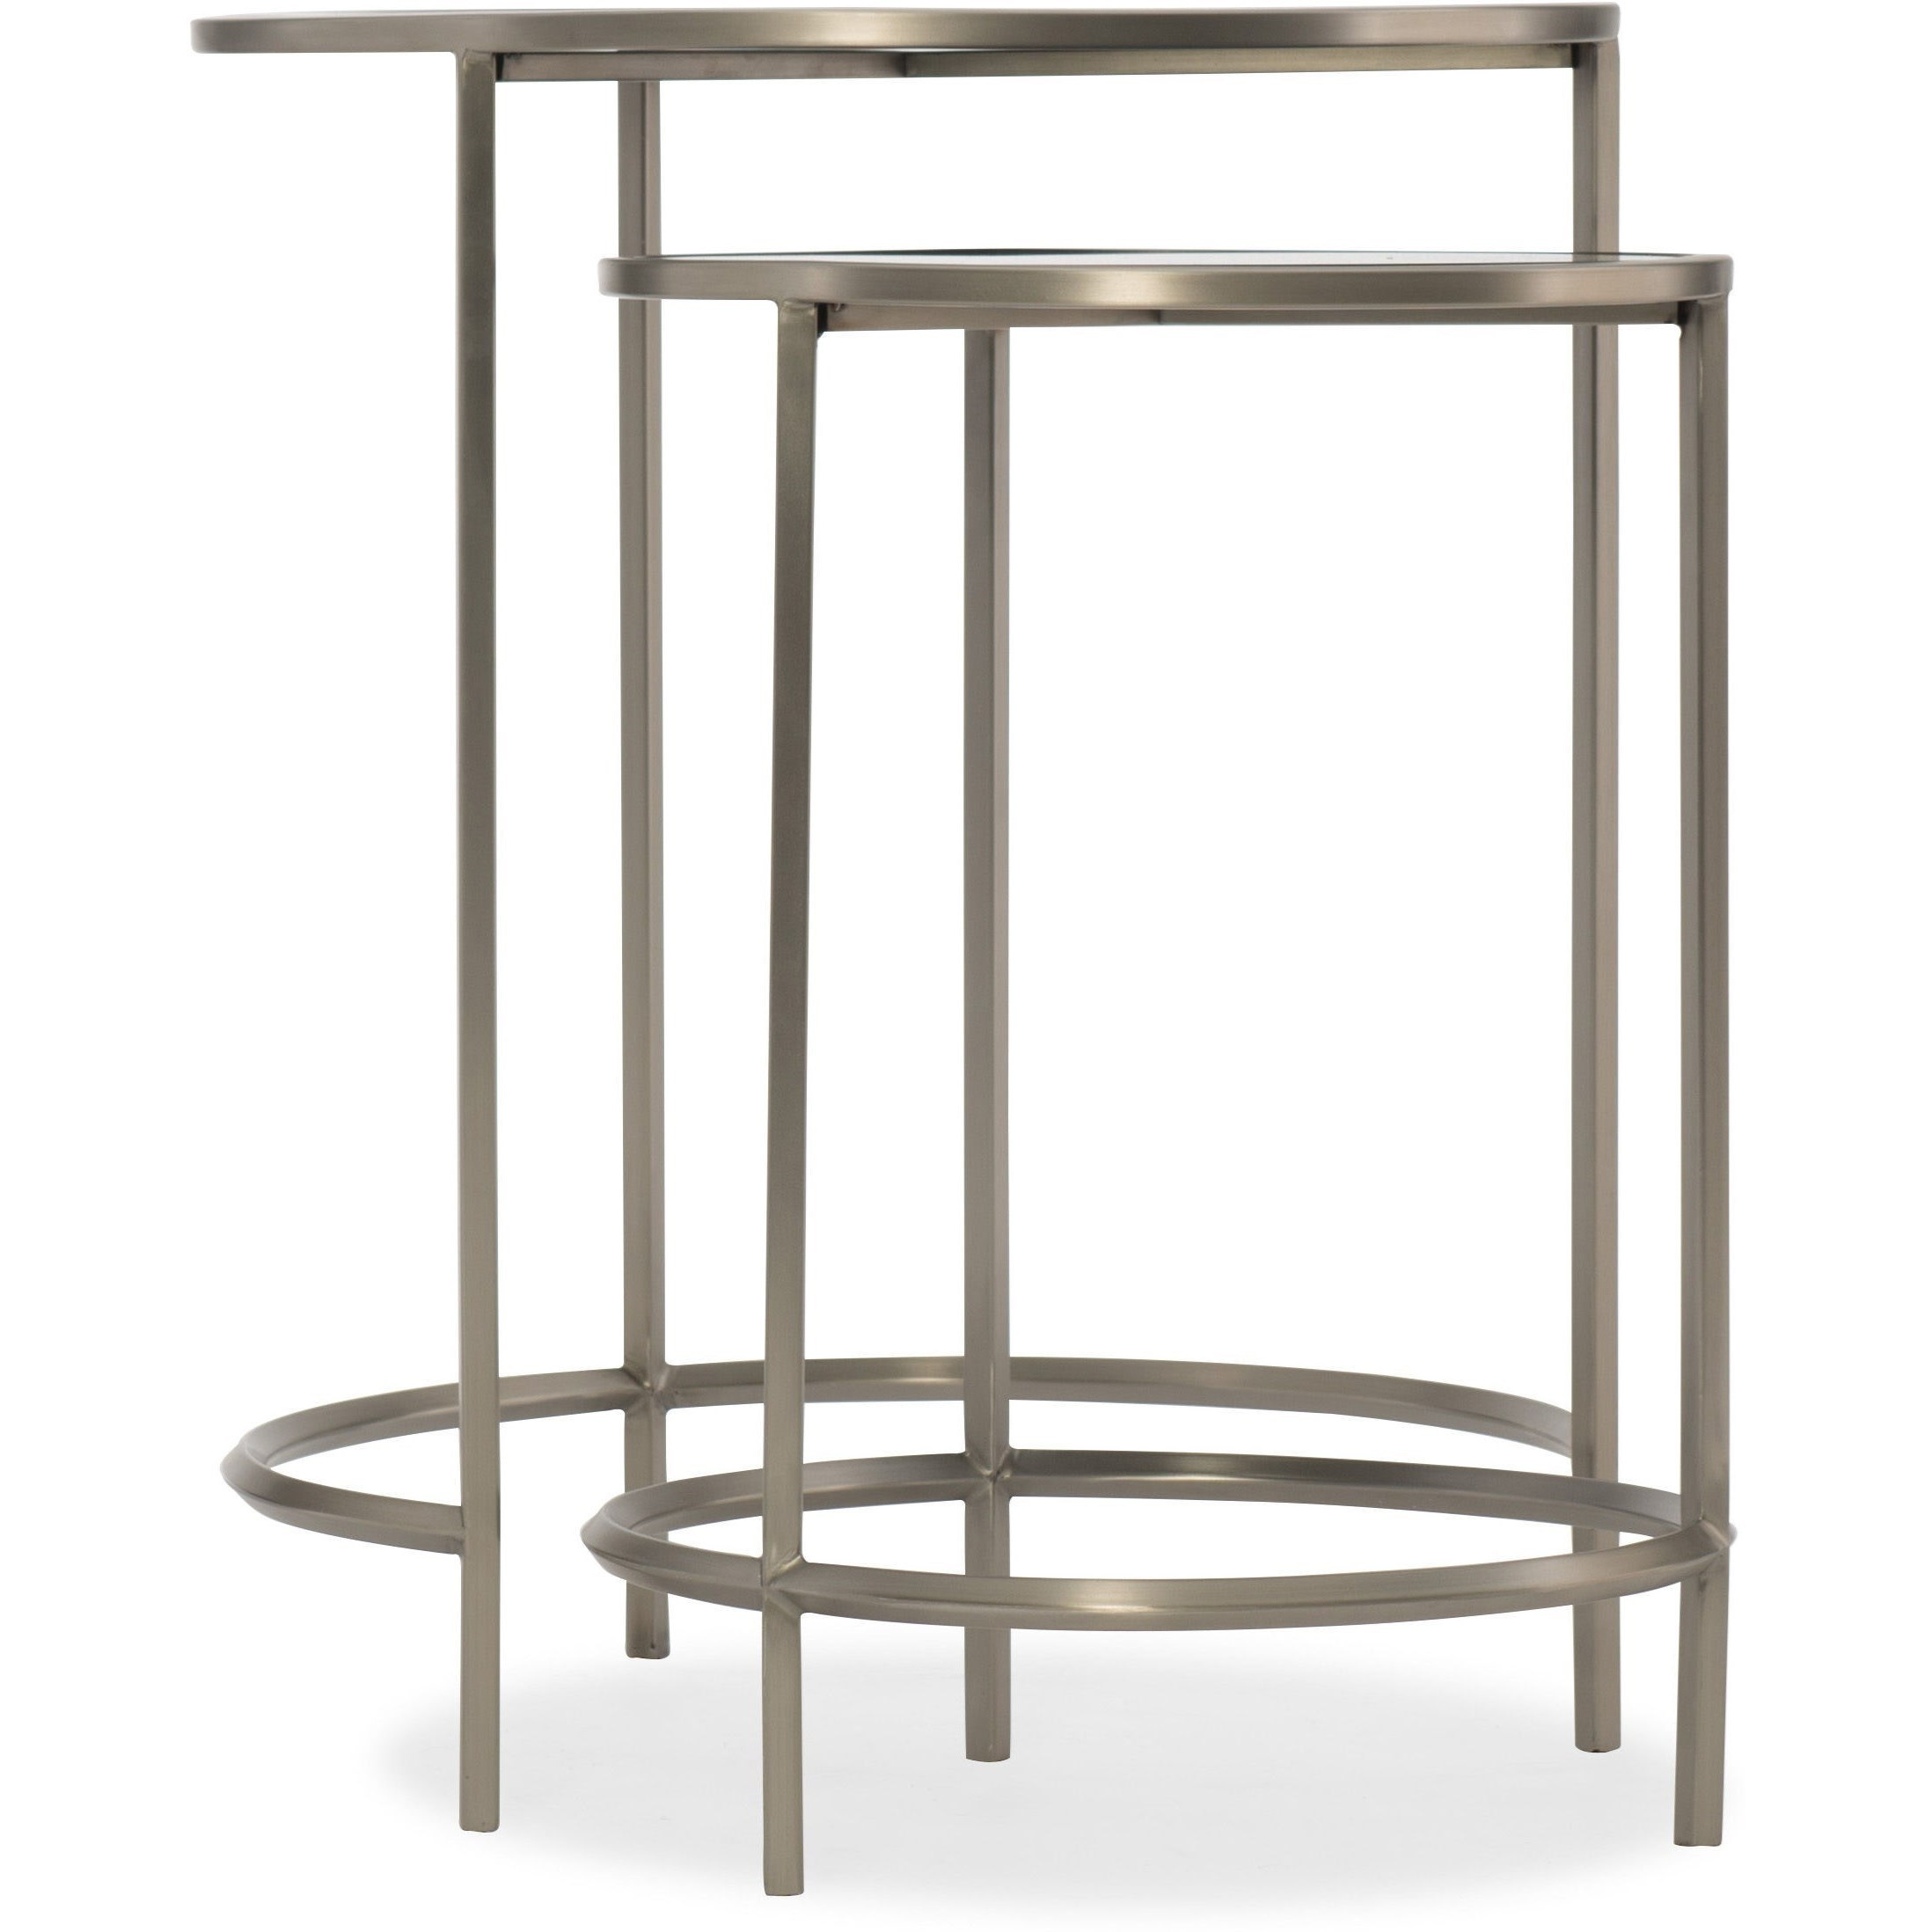 Living Room Accents Nesting Tables by Hooker Furniture at Fashion Furniture